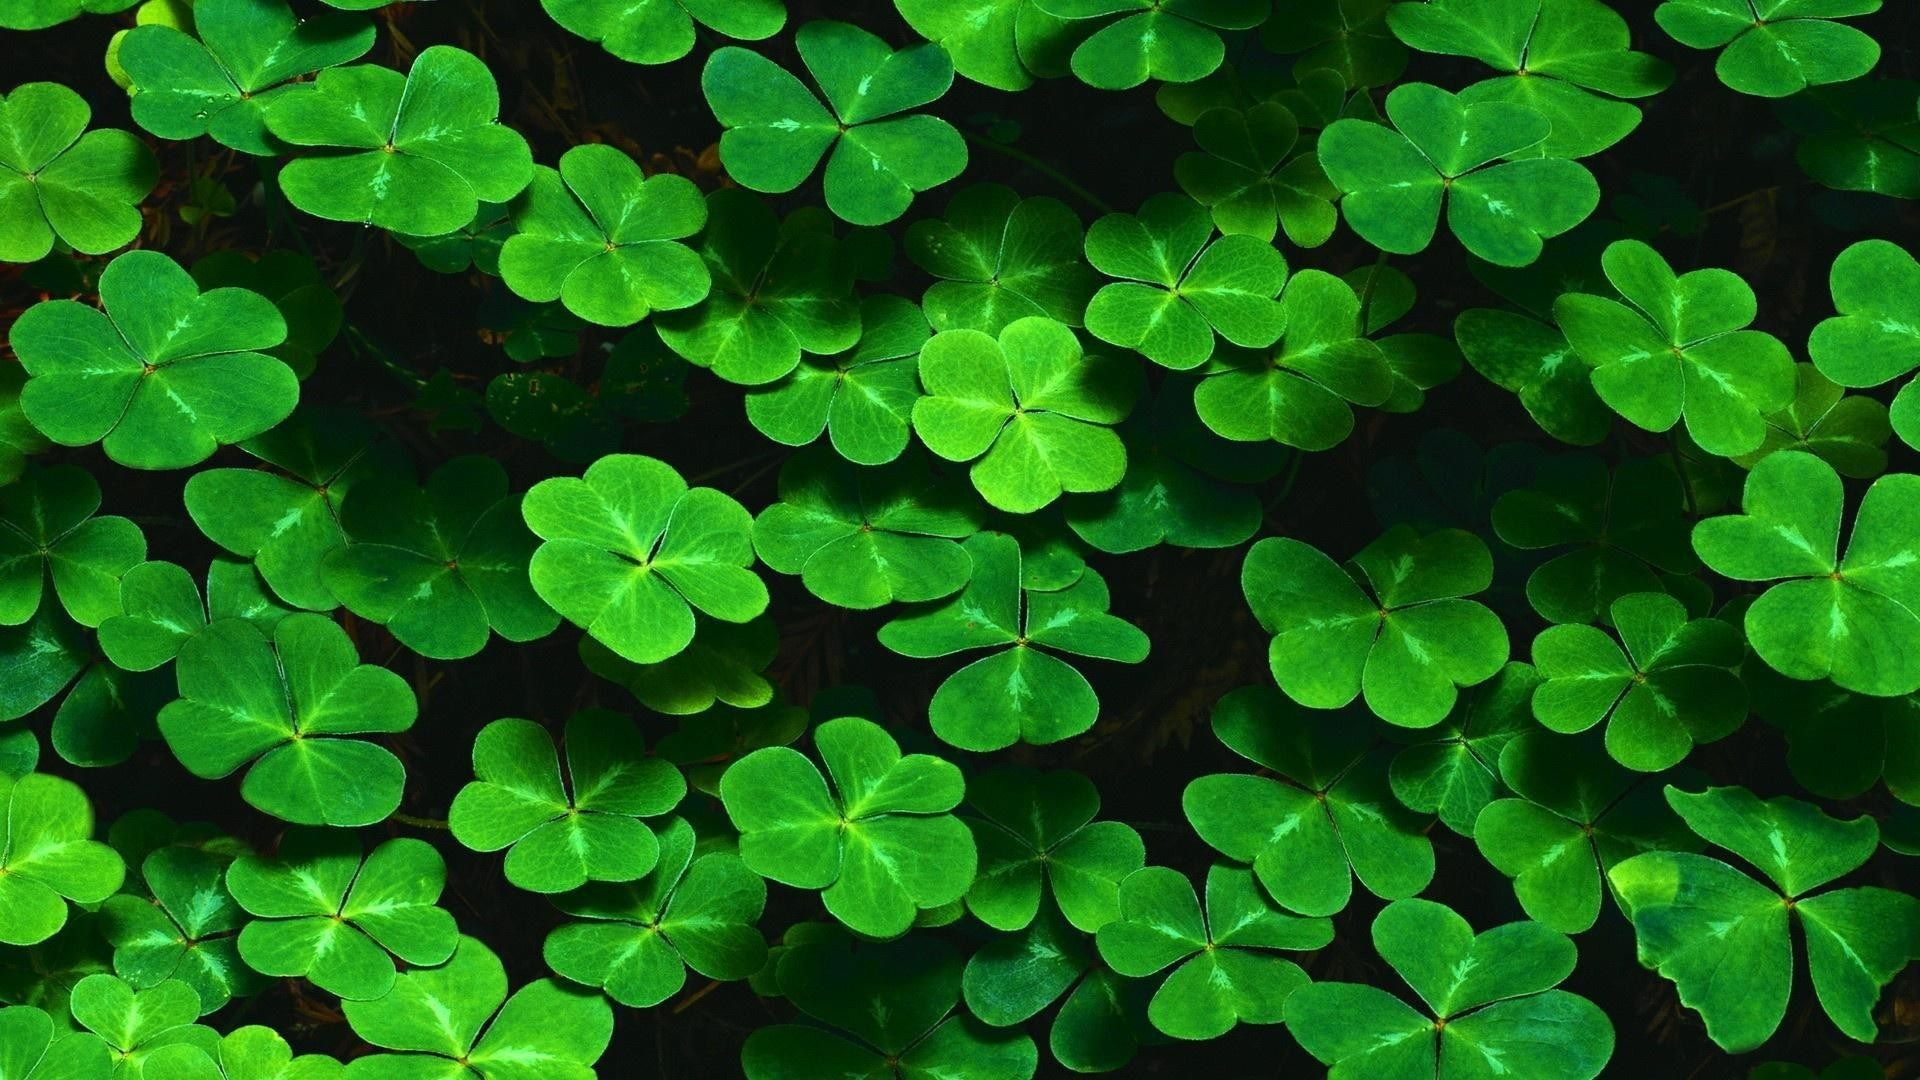 Shamrock Wallpaper For Iphone Posted By Michelle Walker